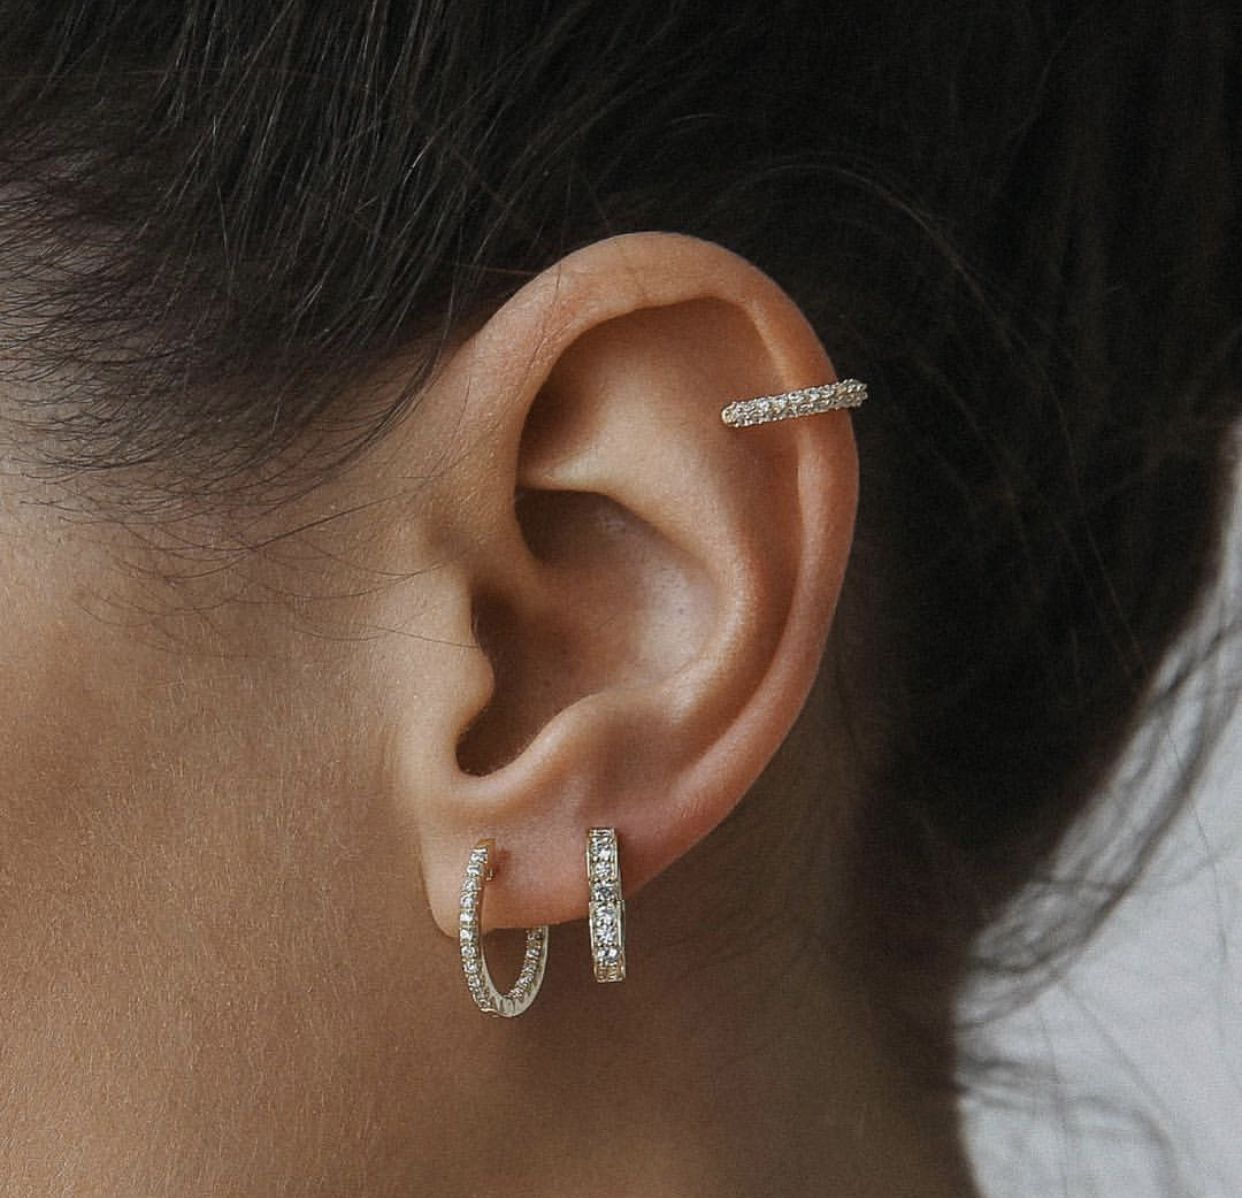 90s nose piercing  Pin by Cynthia Nilberg on Earrings piercings I want  Pinterest